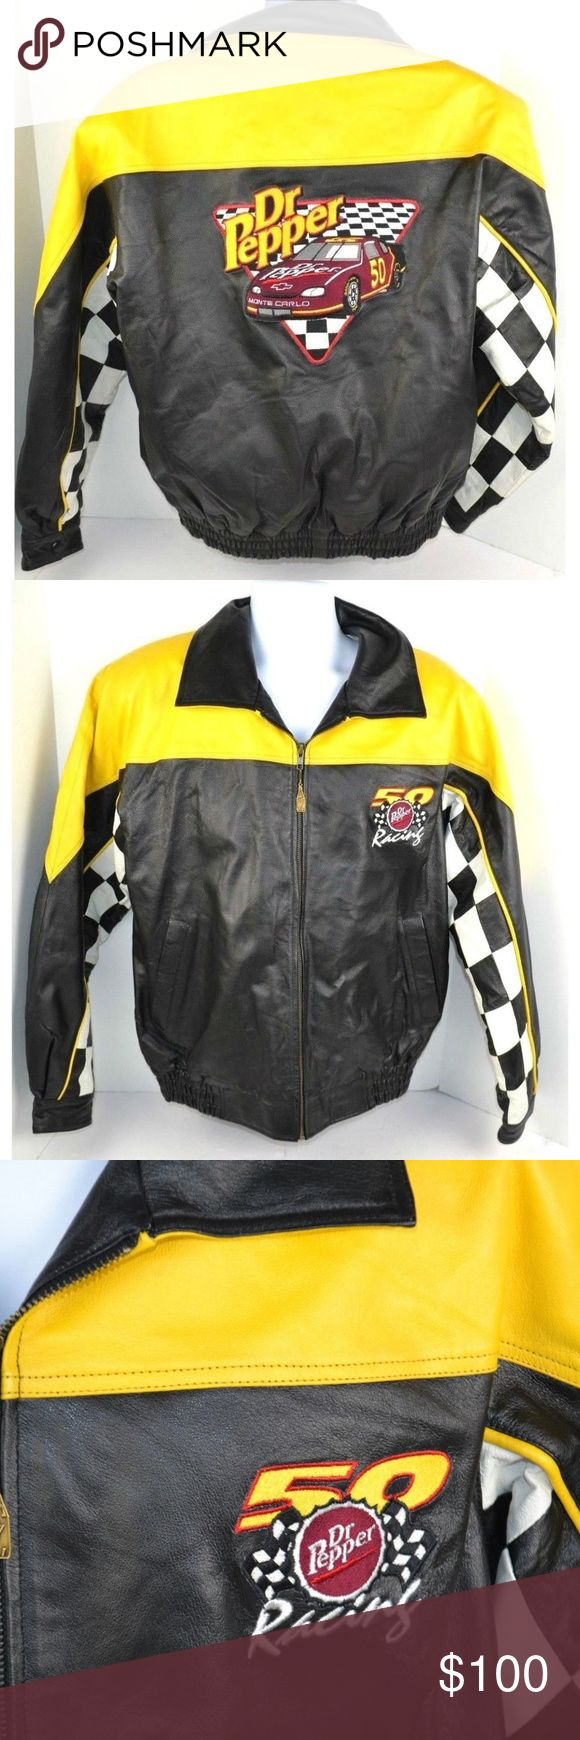 Dr. Pepper Limited Edition Leather Jacket Dr. Pepper